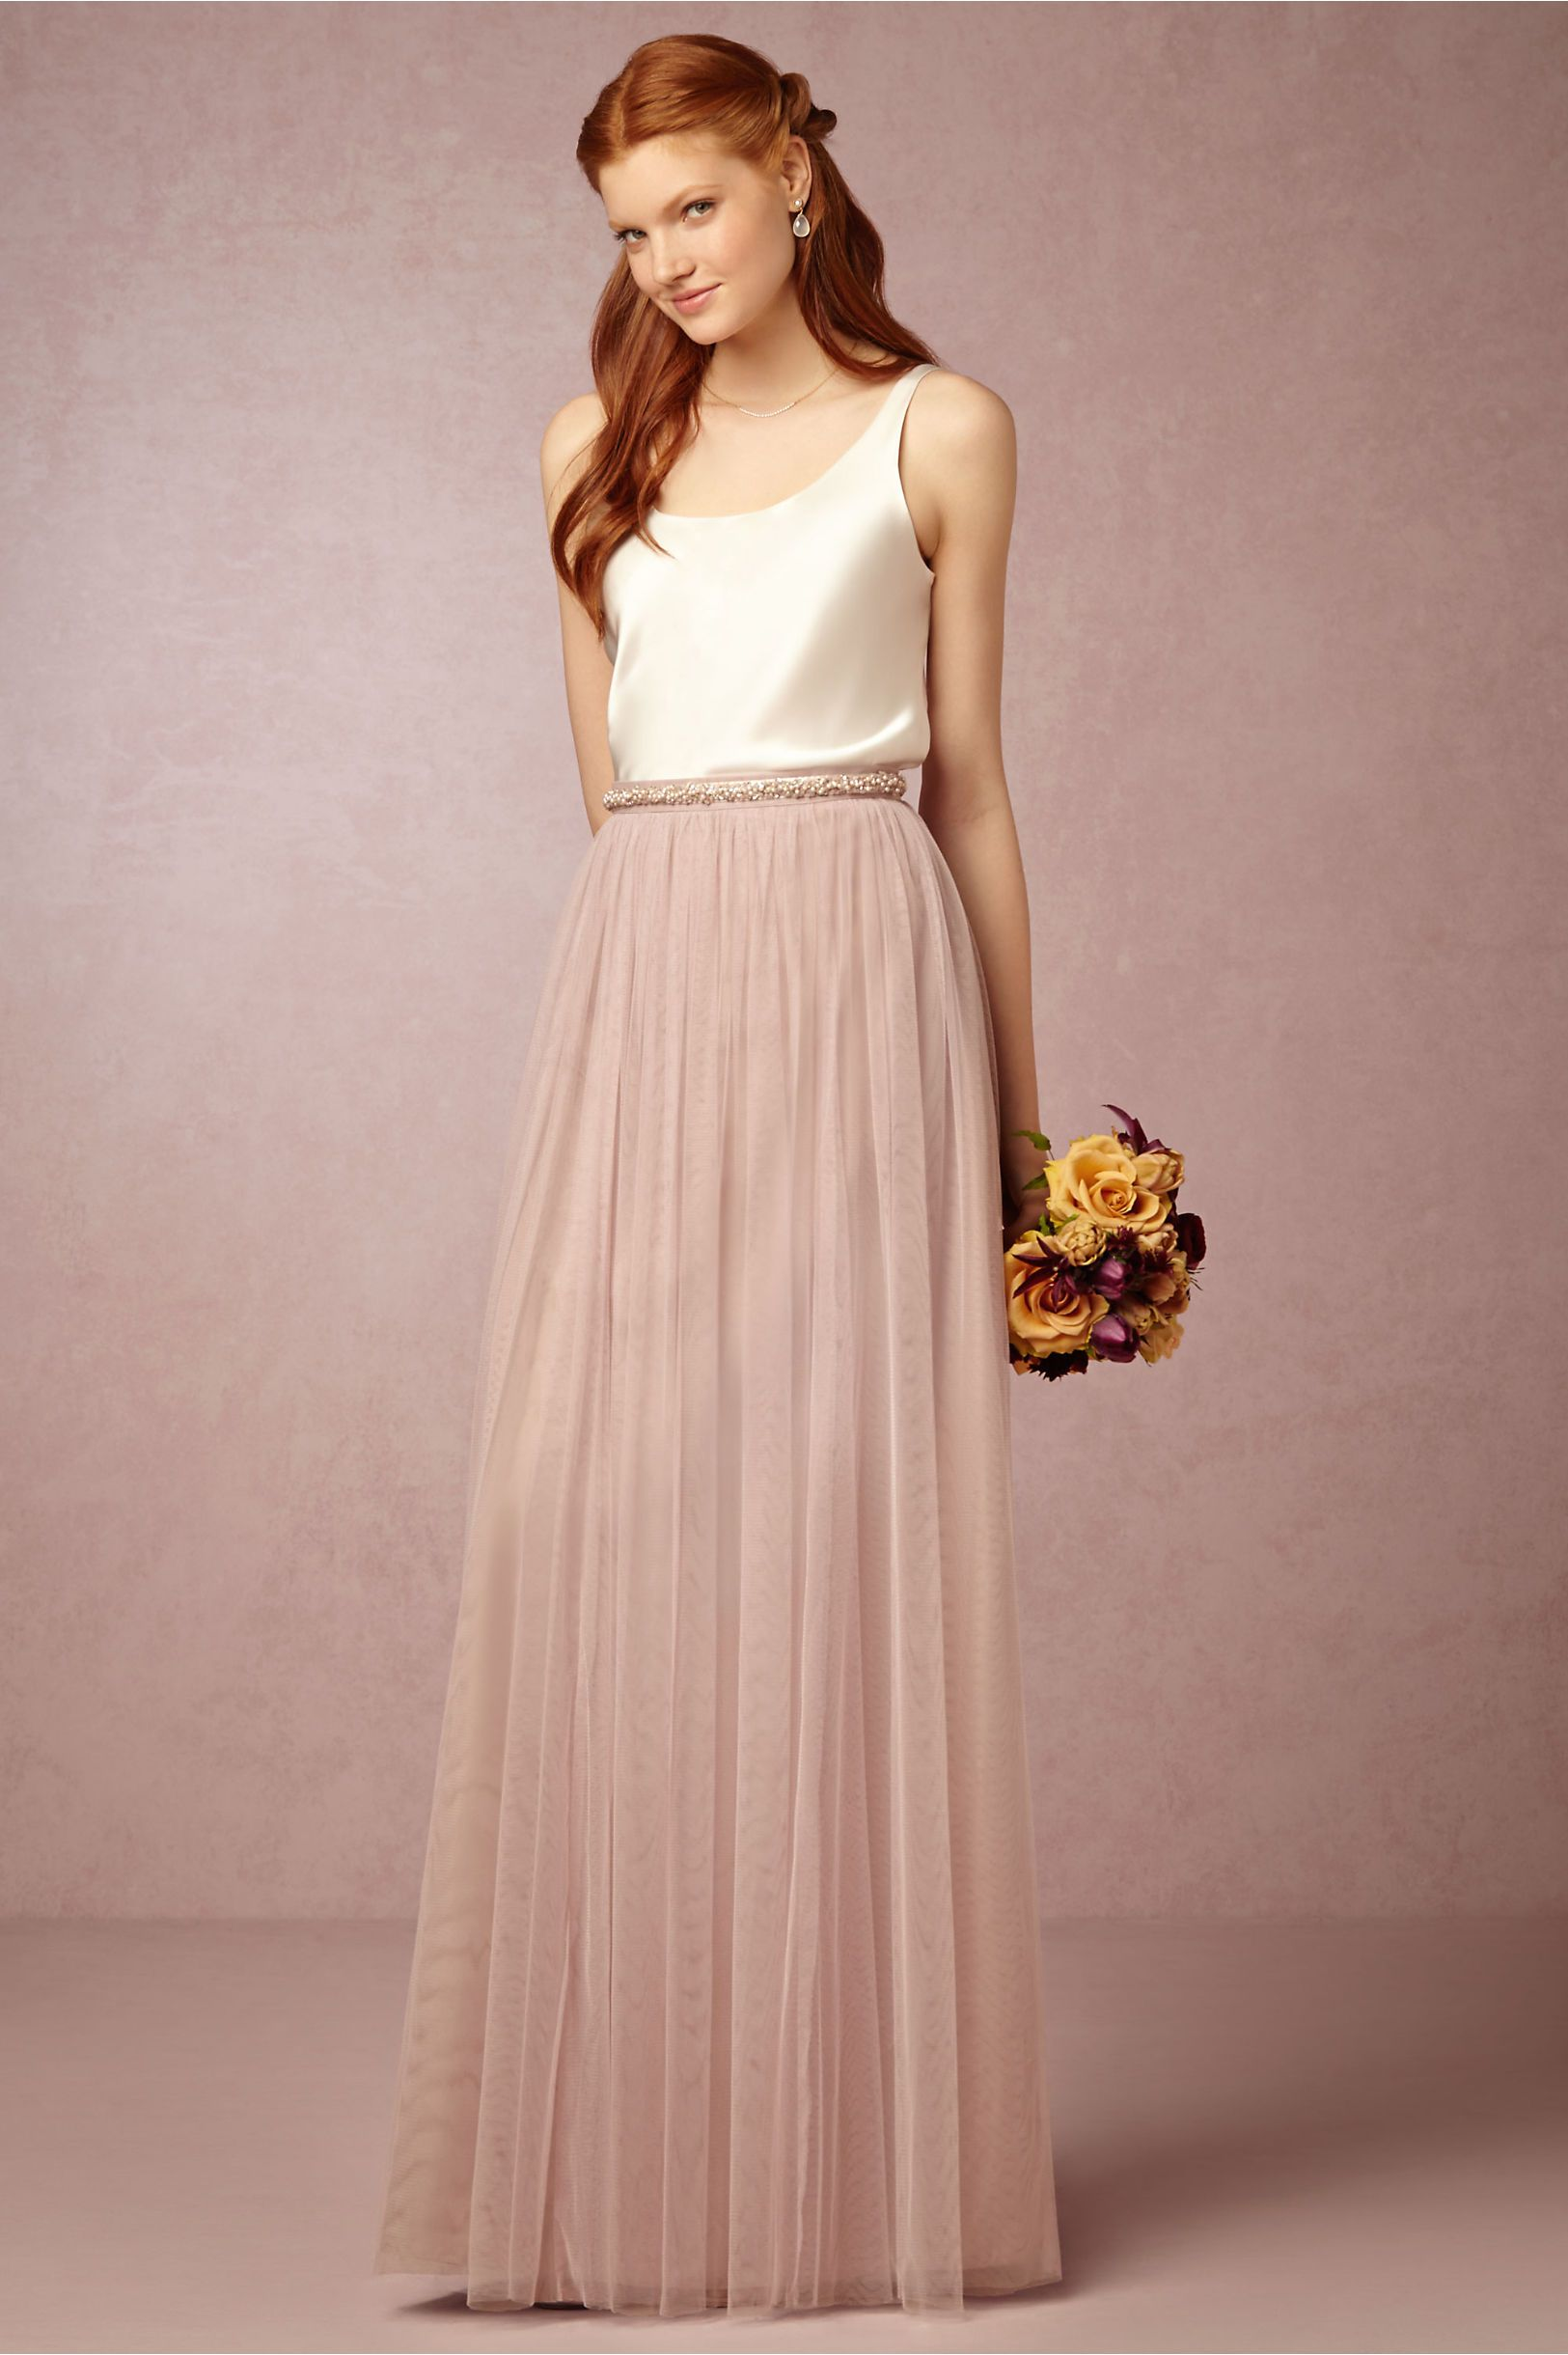 Louise Tulle Skirt in Bridesmaids View All Dresses at BHLDN | Un si ...